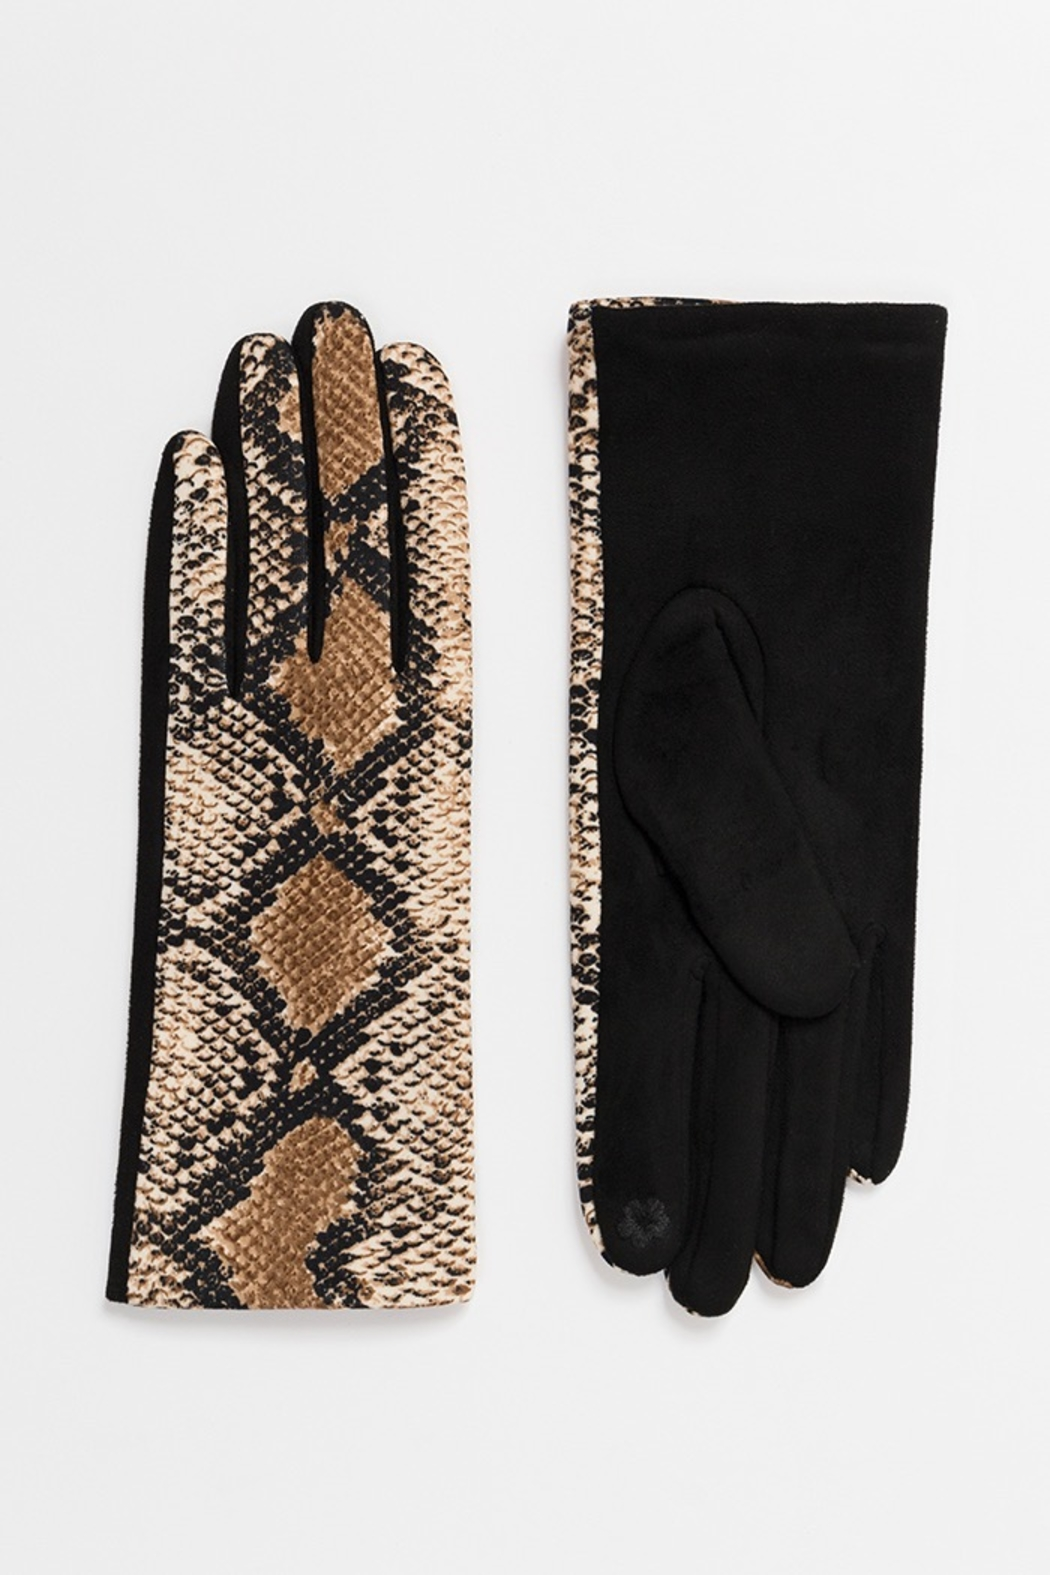 Pia Rossini SNAKE PRINT GLOVES - Main Image